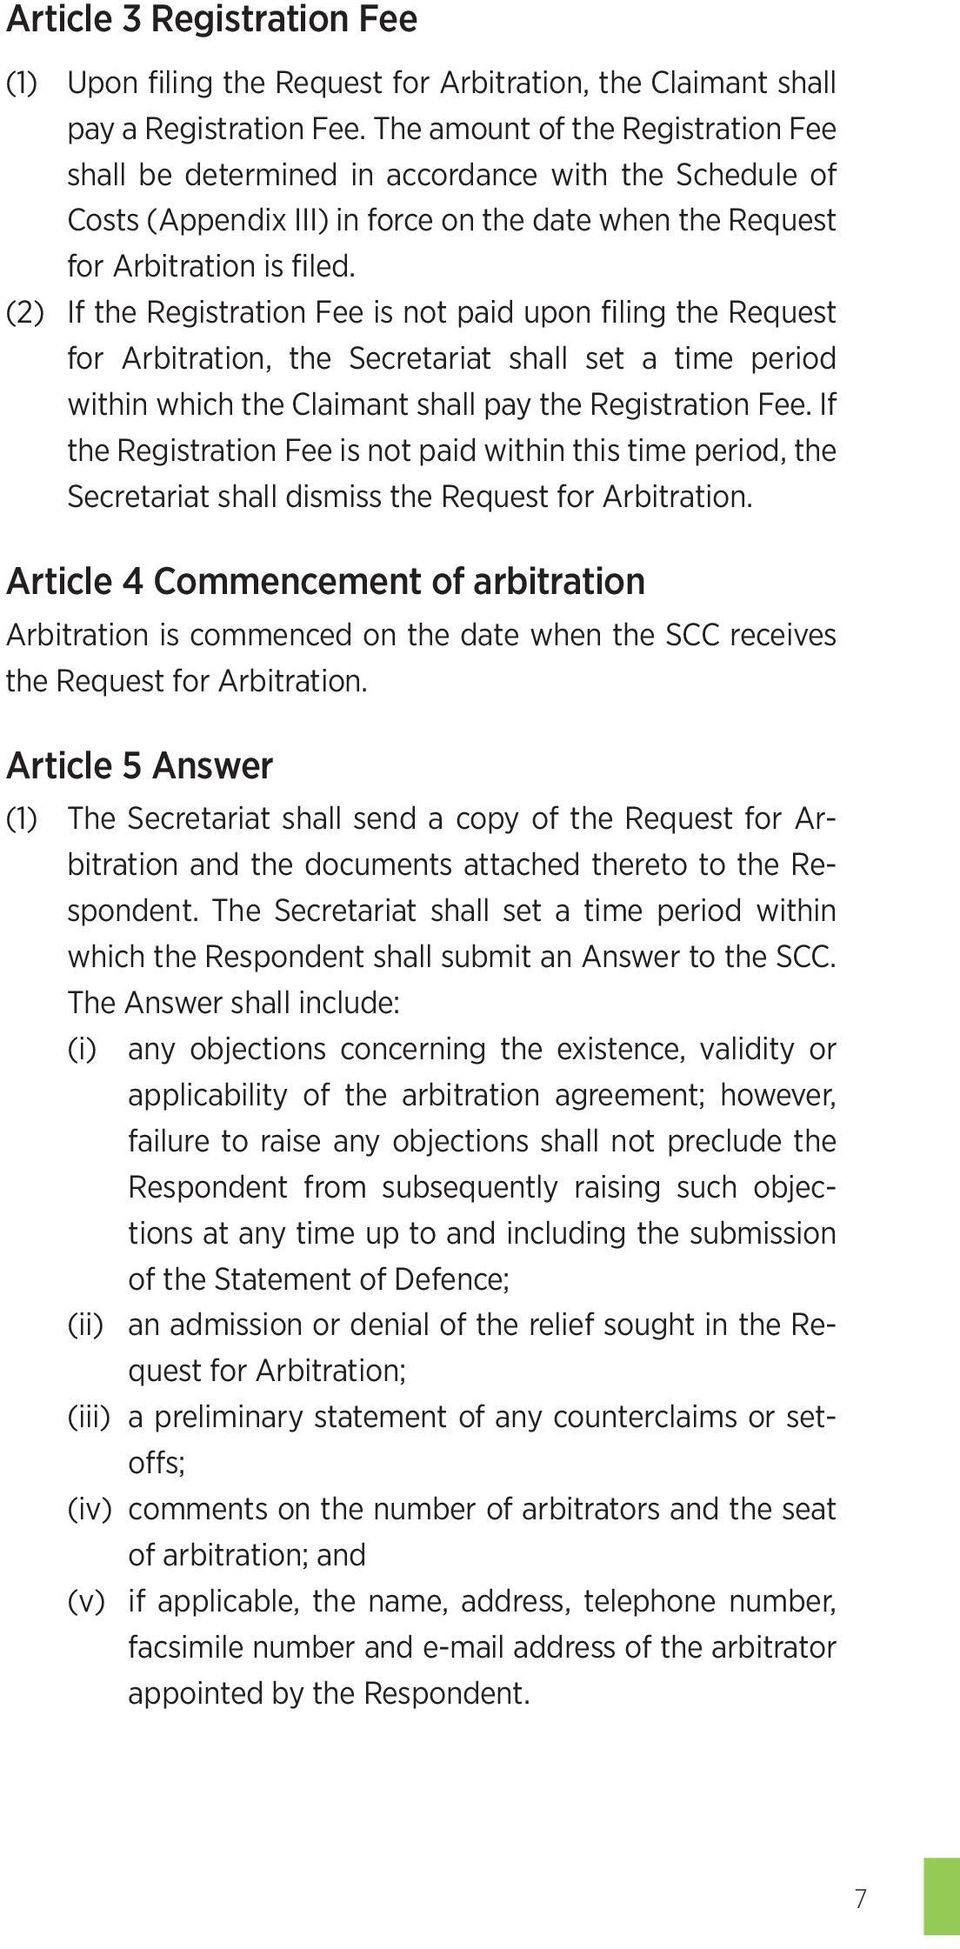 (2) If the Registration Fee is not paid upon filing the Request for Arbitration, the Secretariat shall set a time period within which the Claimant shall pay the Registration Fee.